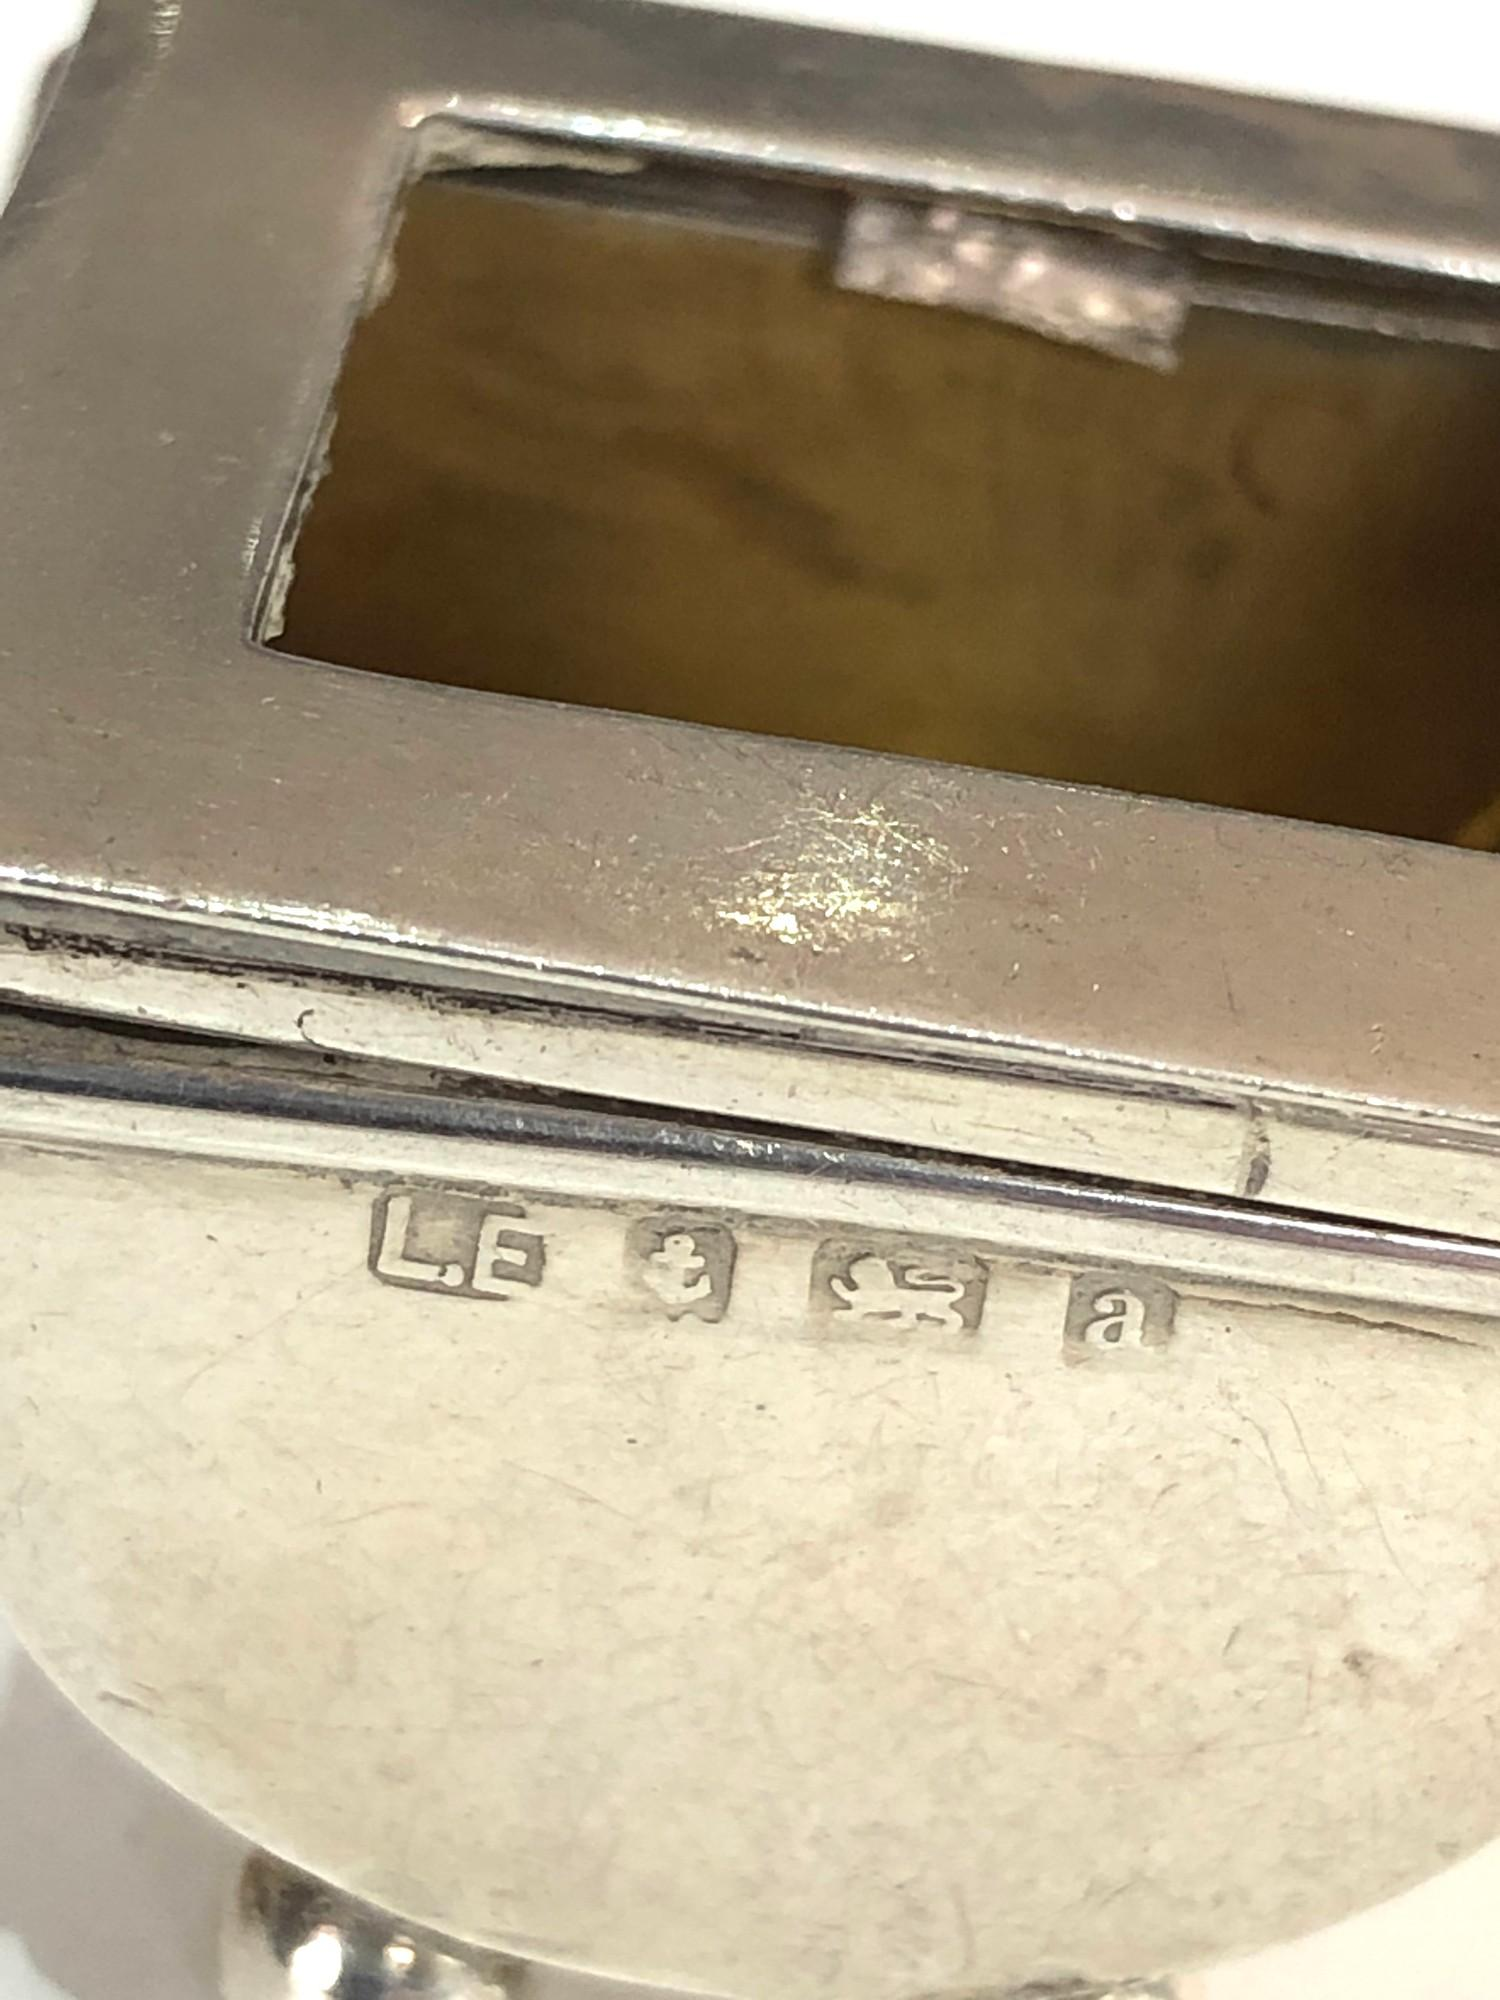 2 antique Silver Stamp Cases hinged lids both with Birmingham silver hallmarks please see images for - Image 4 of 5